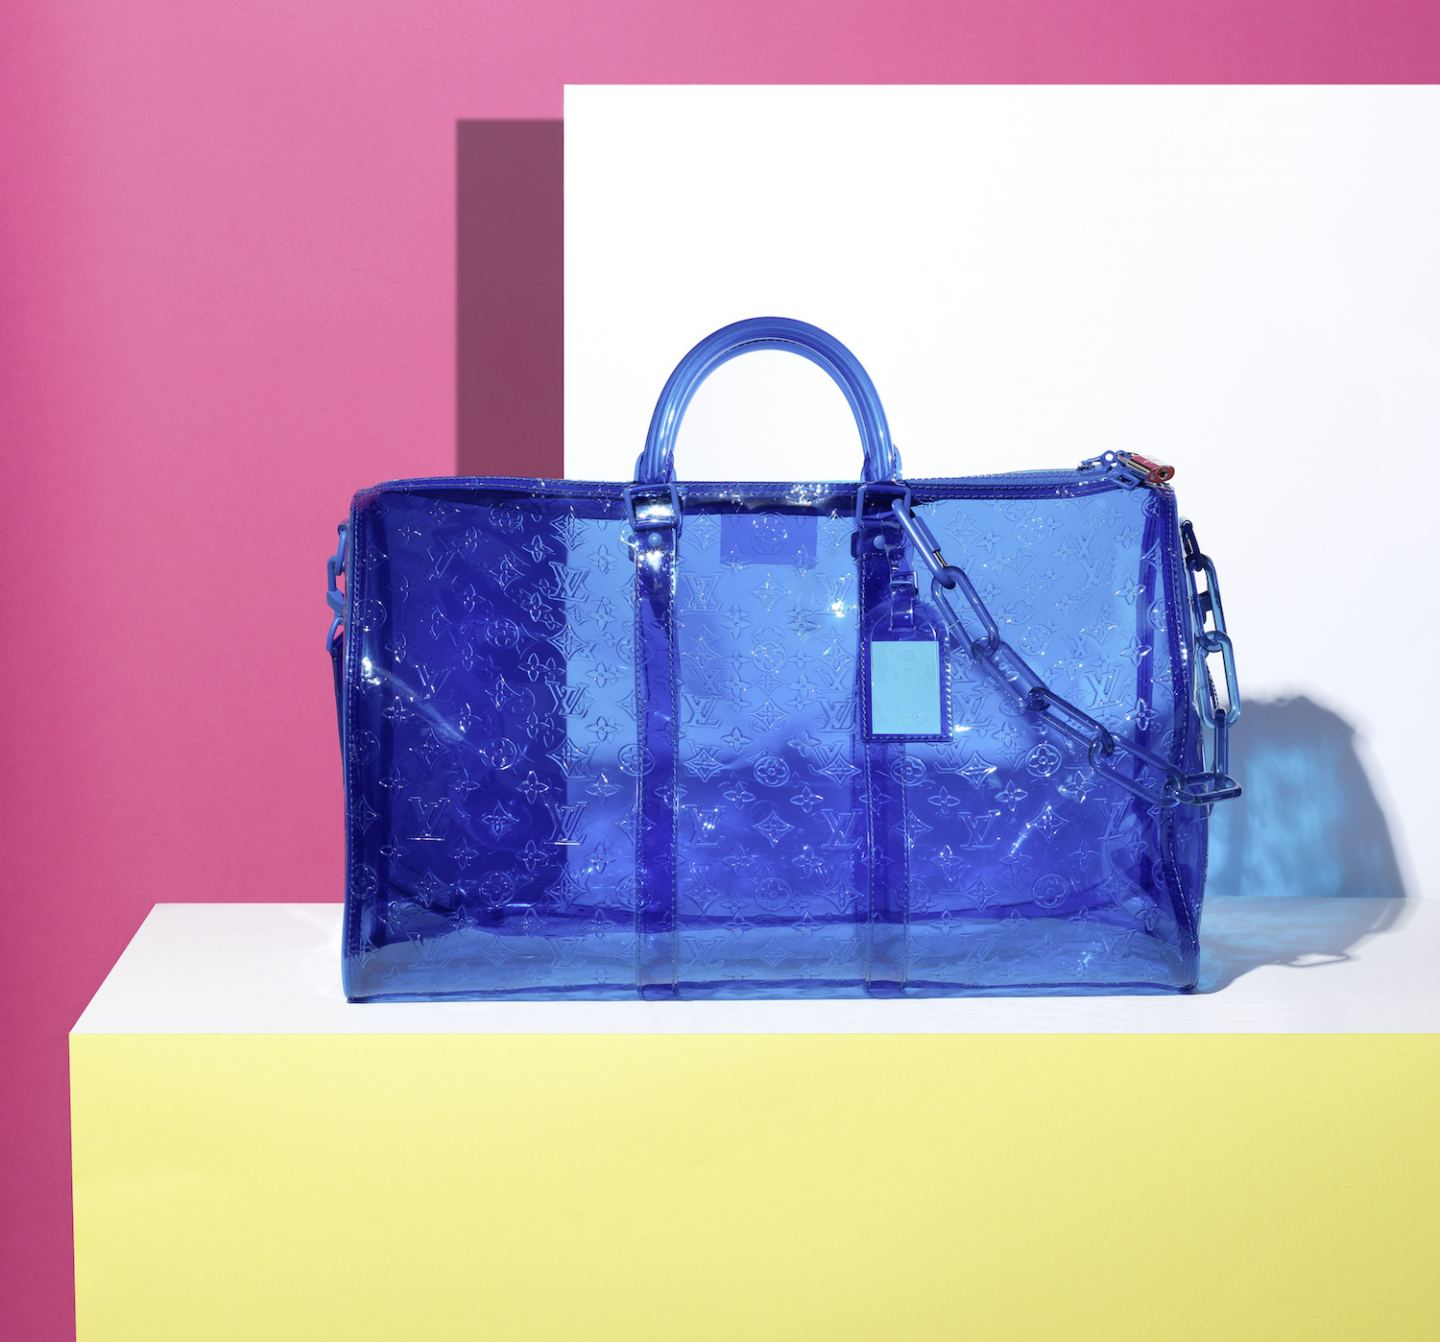 Blue louis vuitton bonhams auction house